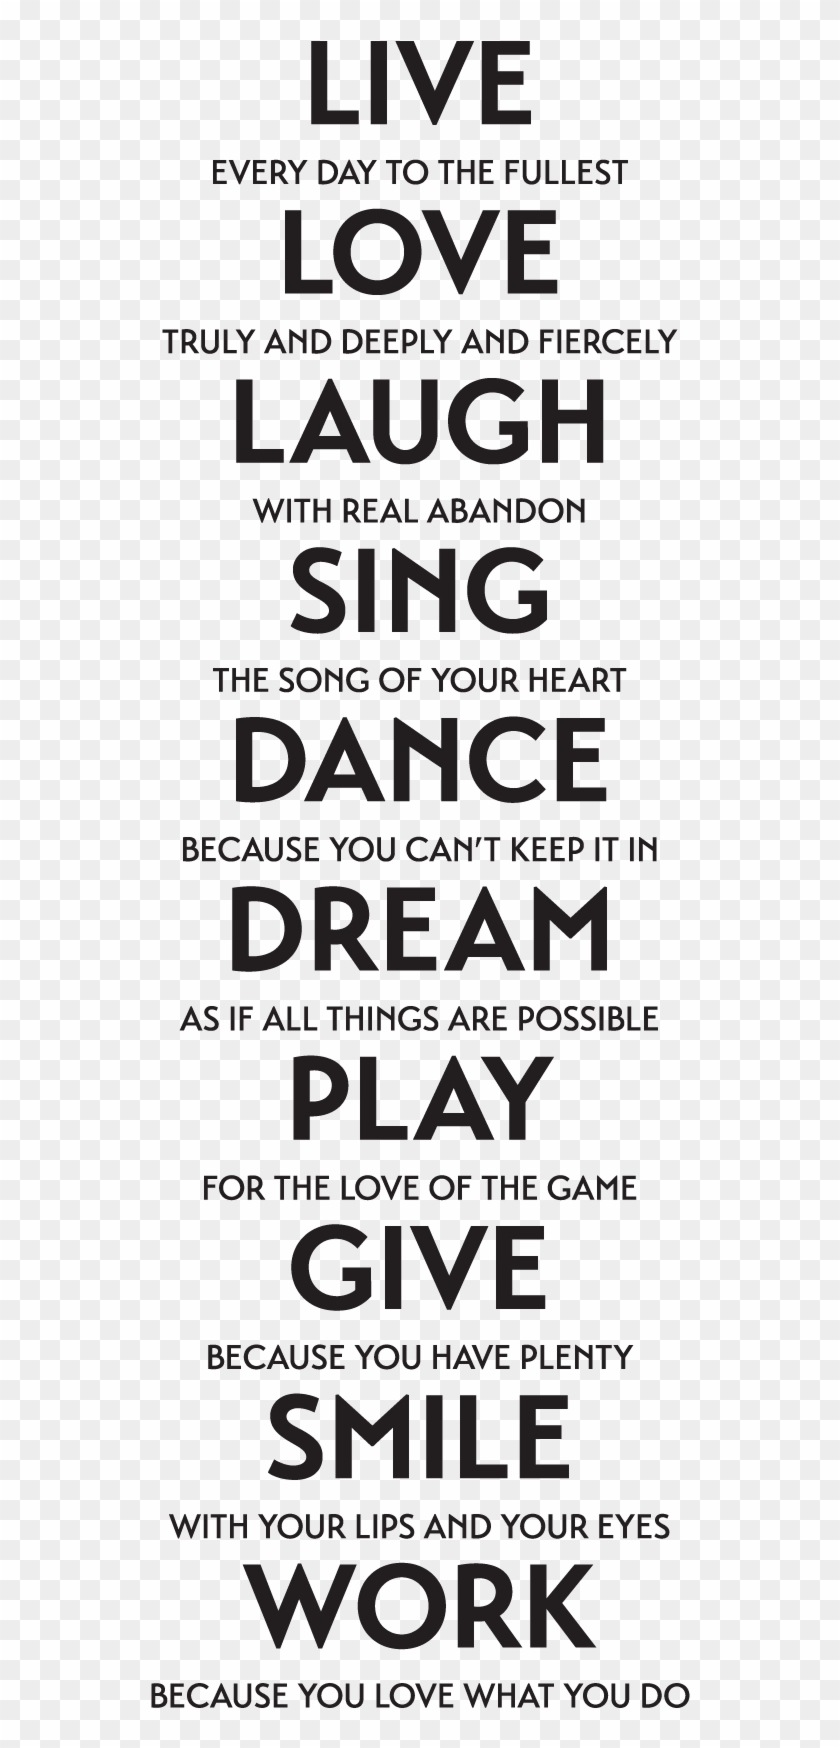 Live Love Laugh Quote - Life Love Laugh Quotes, HD Png ...